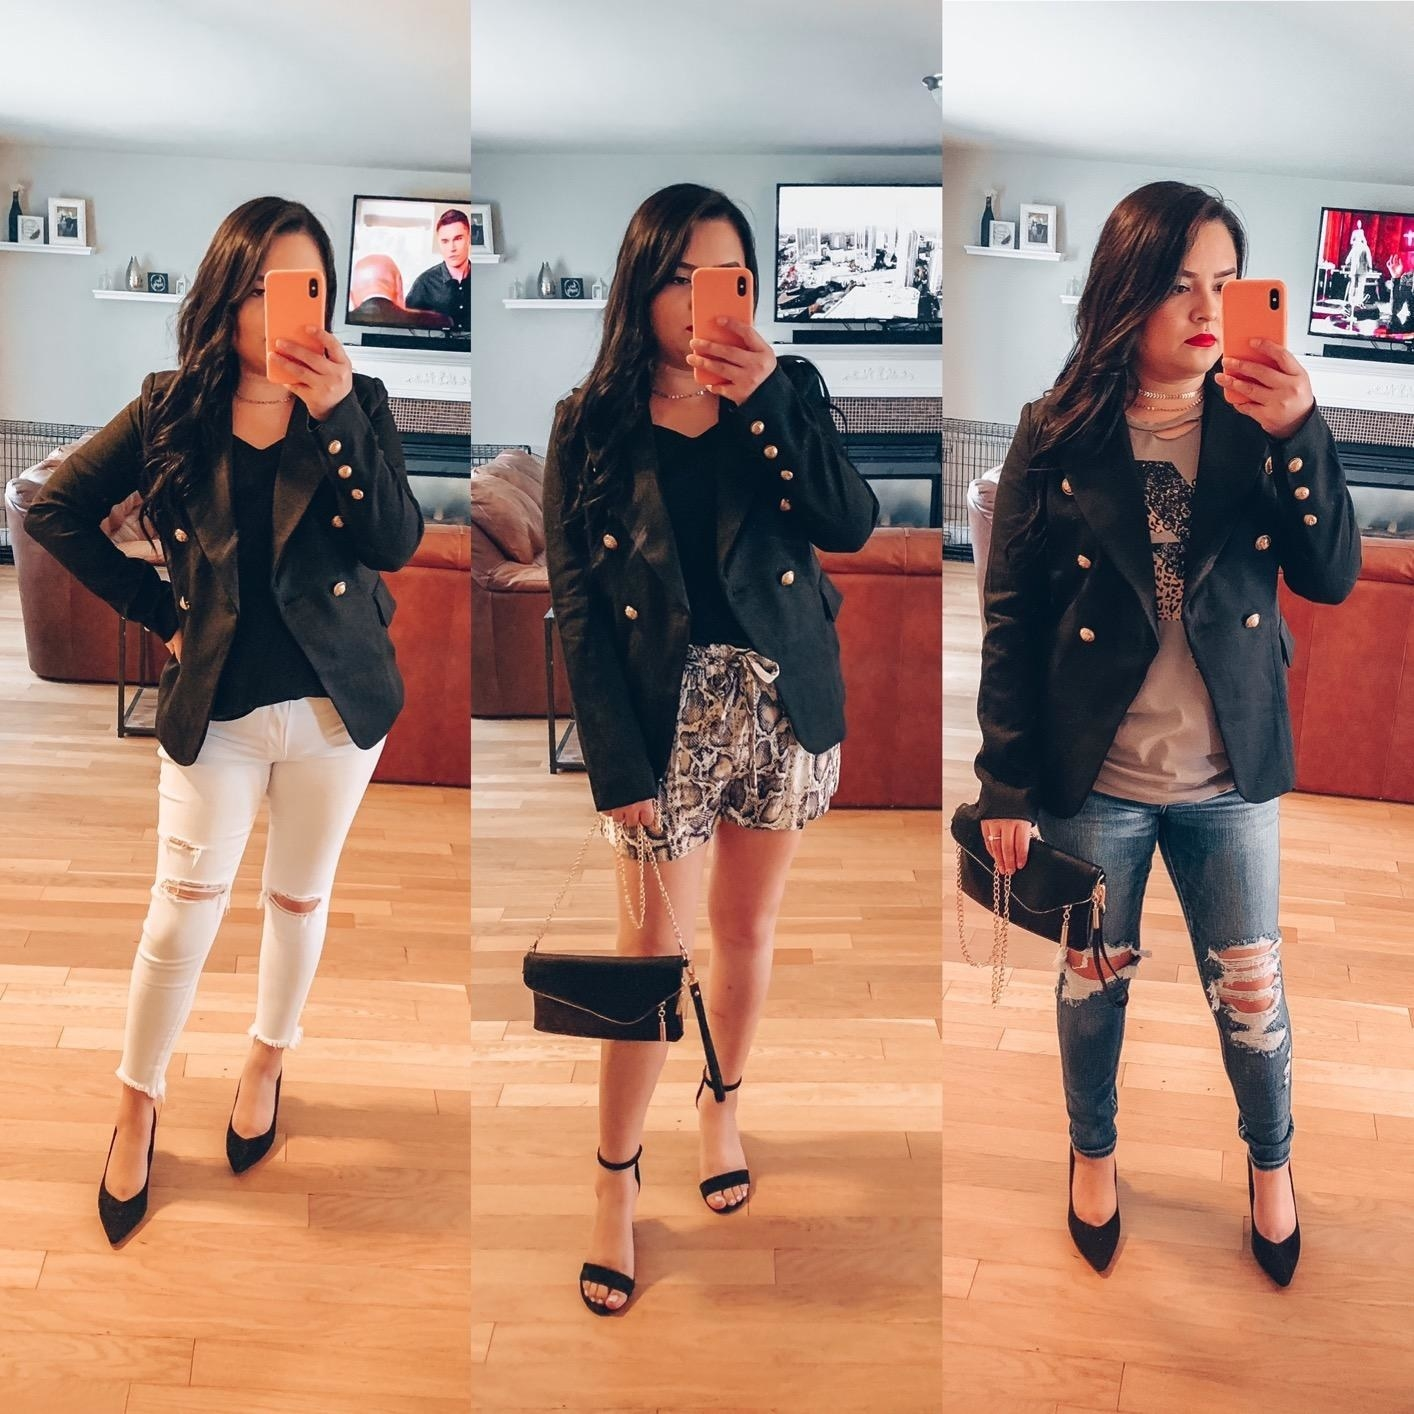 A reviewer styling the black blazer three different ways, with jeans, white jeans, and shorts